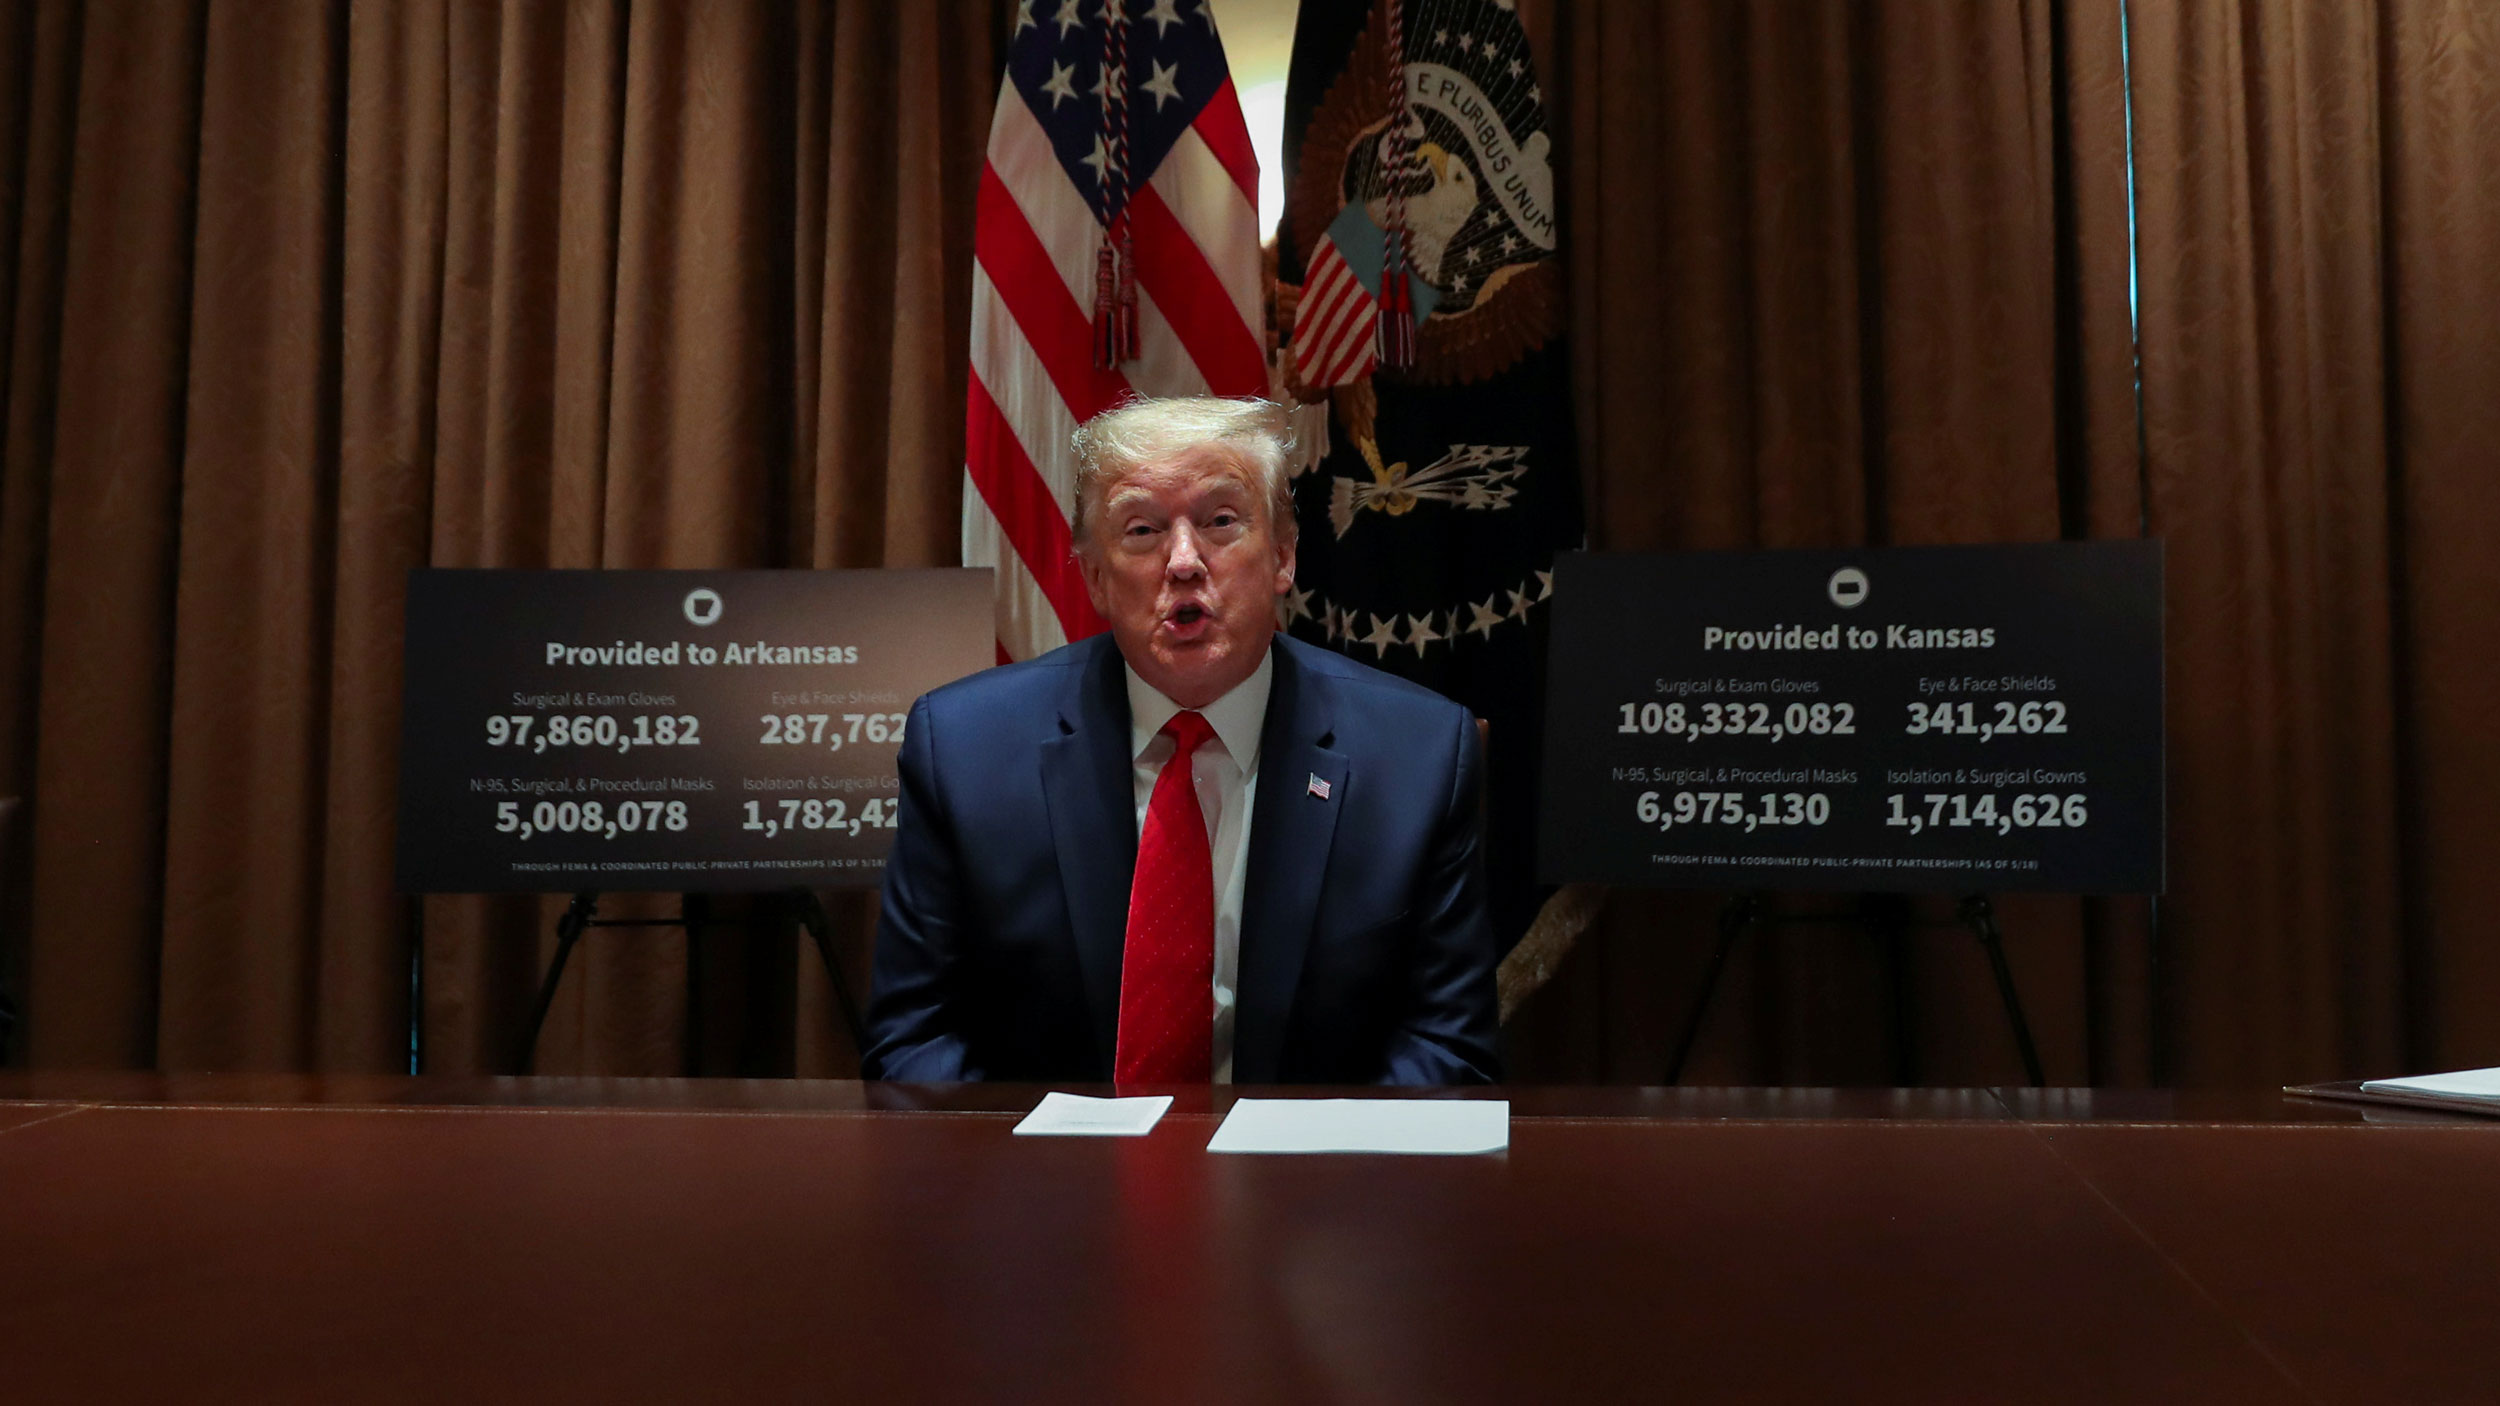 US President Donald Trump is shown sitting at a table wearing a dark suit and red tied with the US flag behind him.